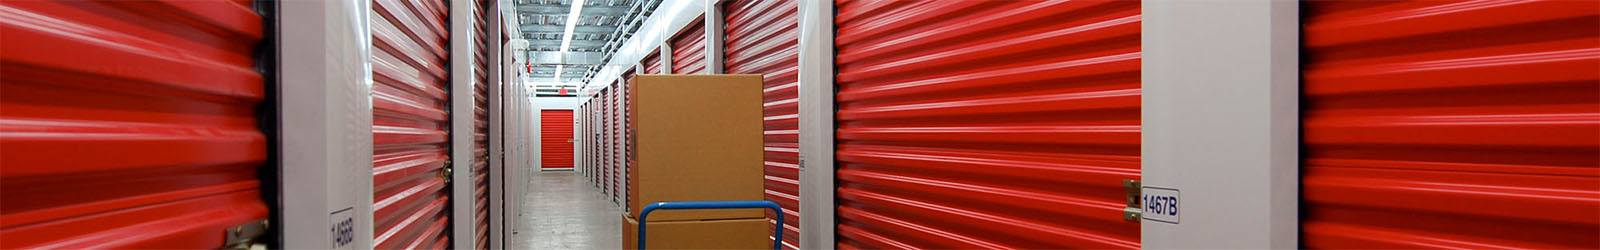 Storage units in Chilliwack, BC